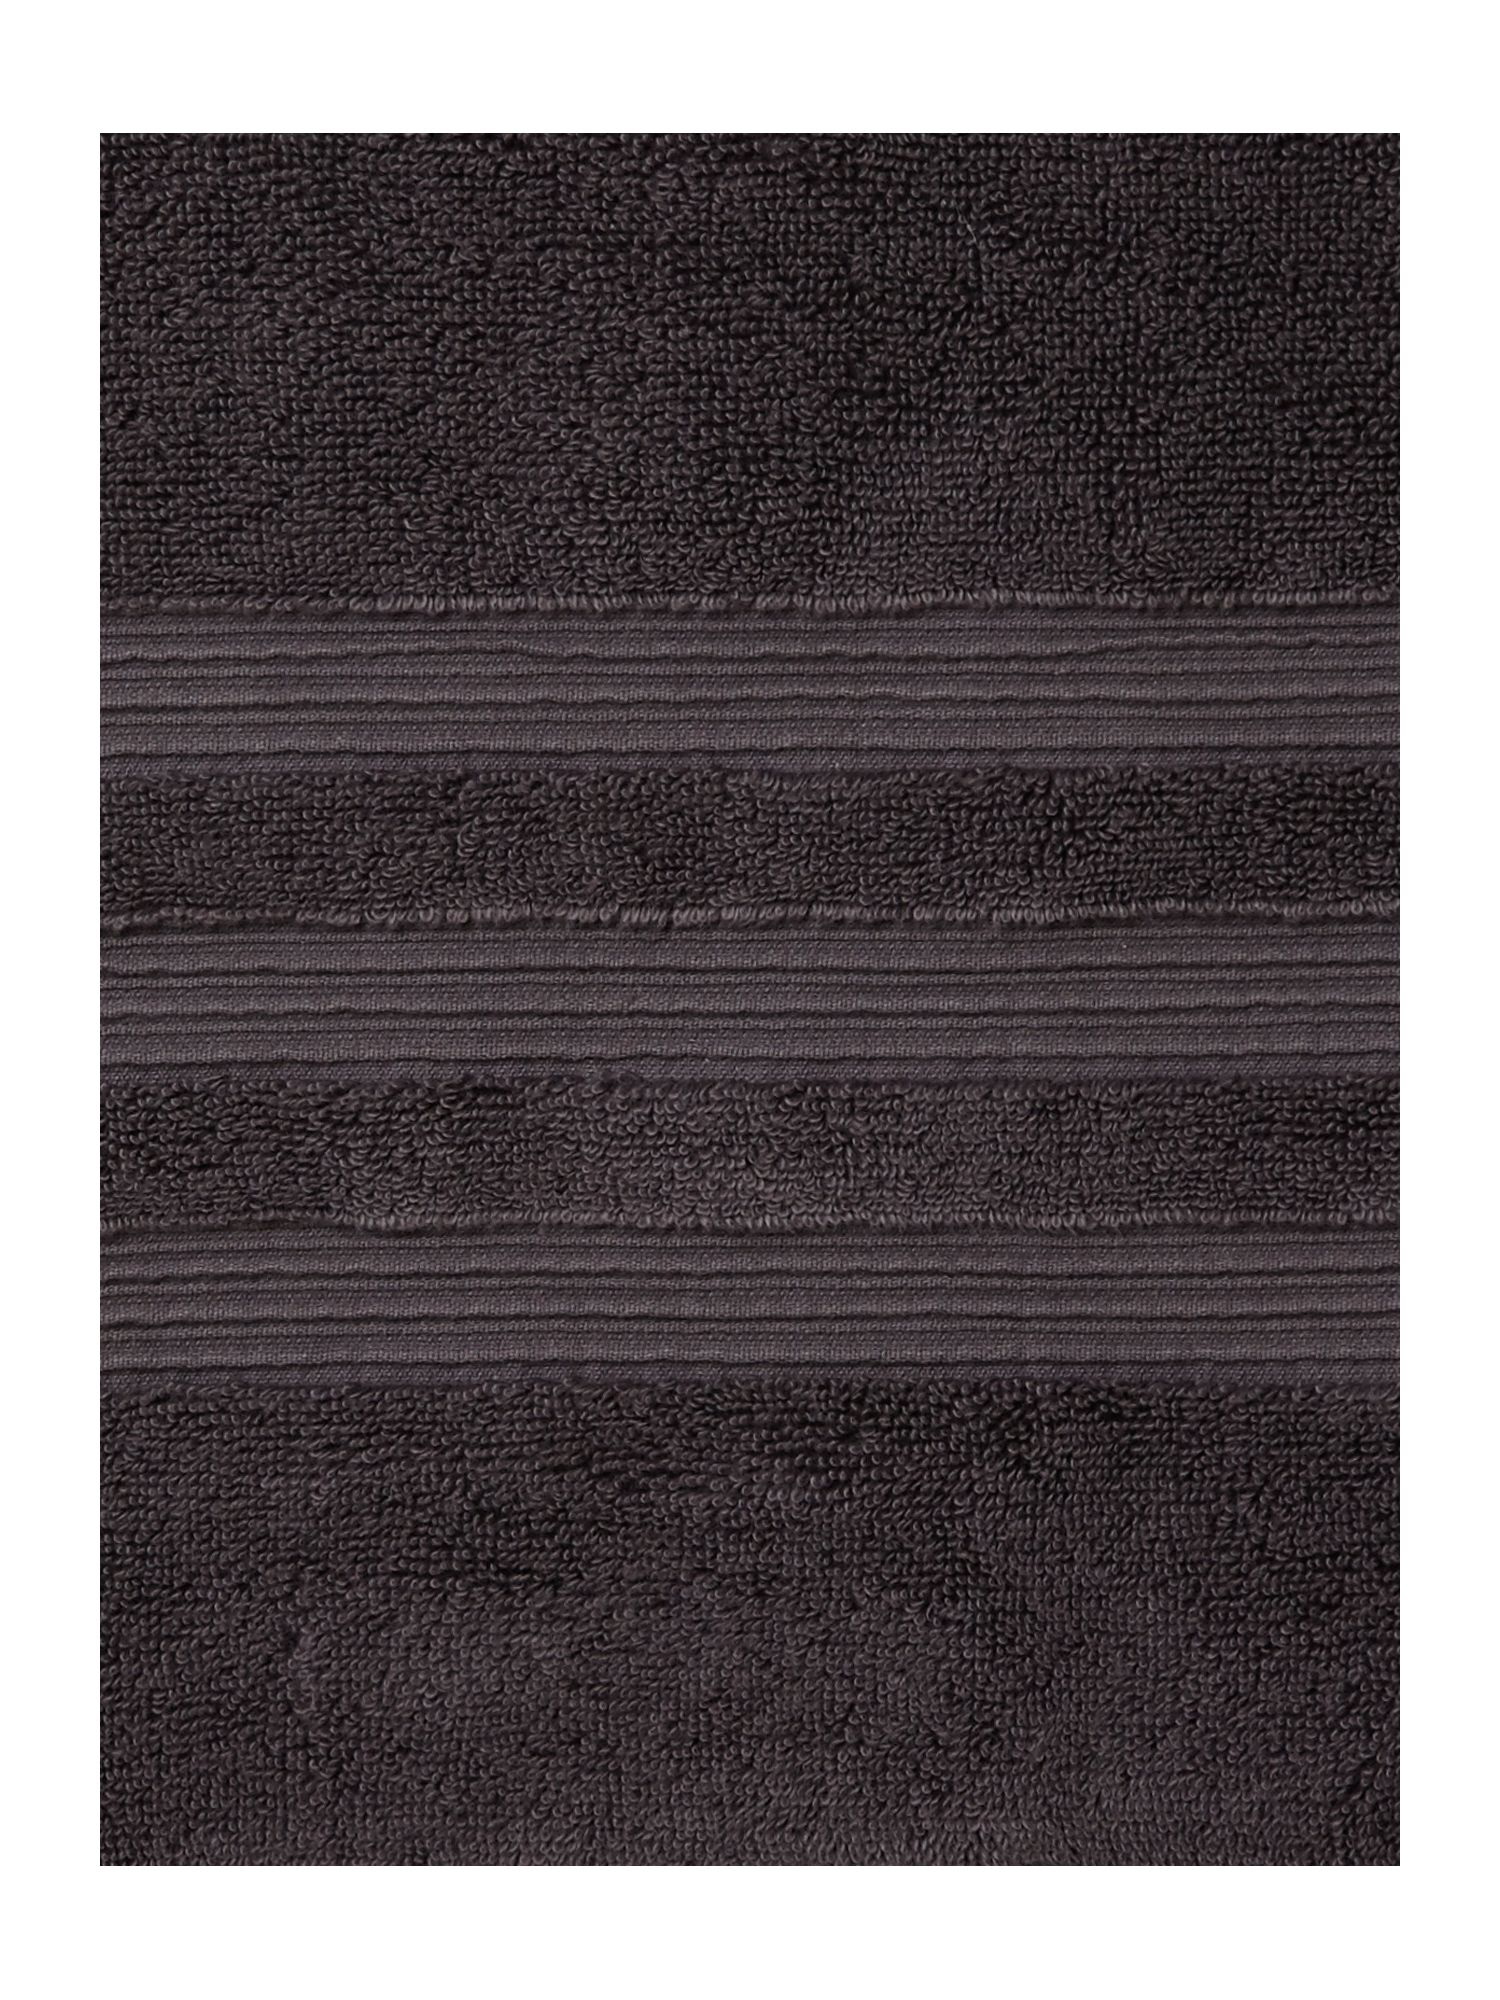 Slate grey towel range